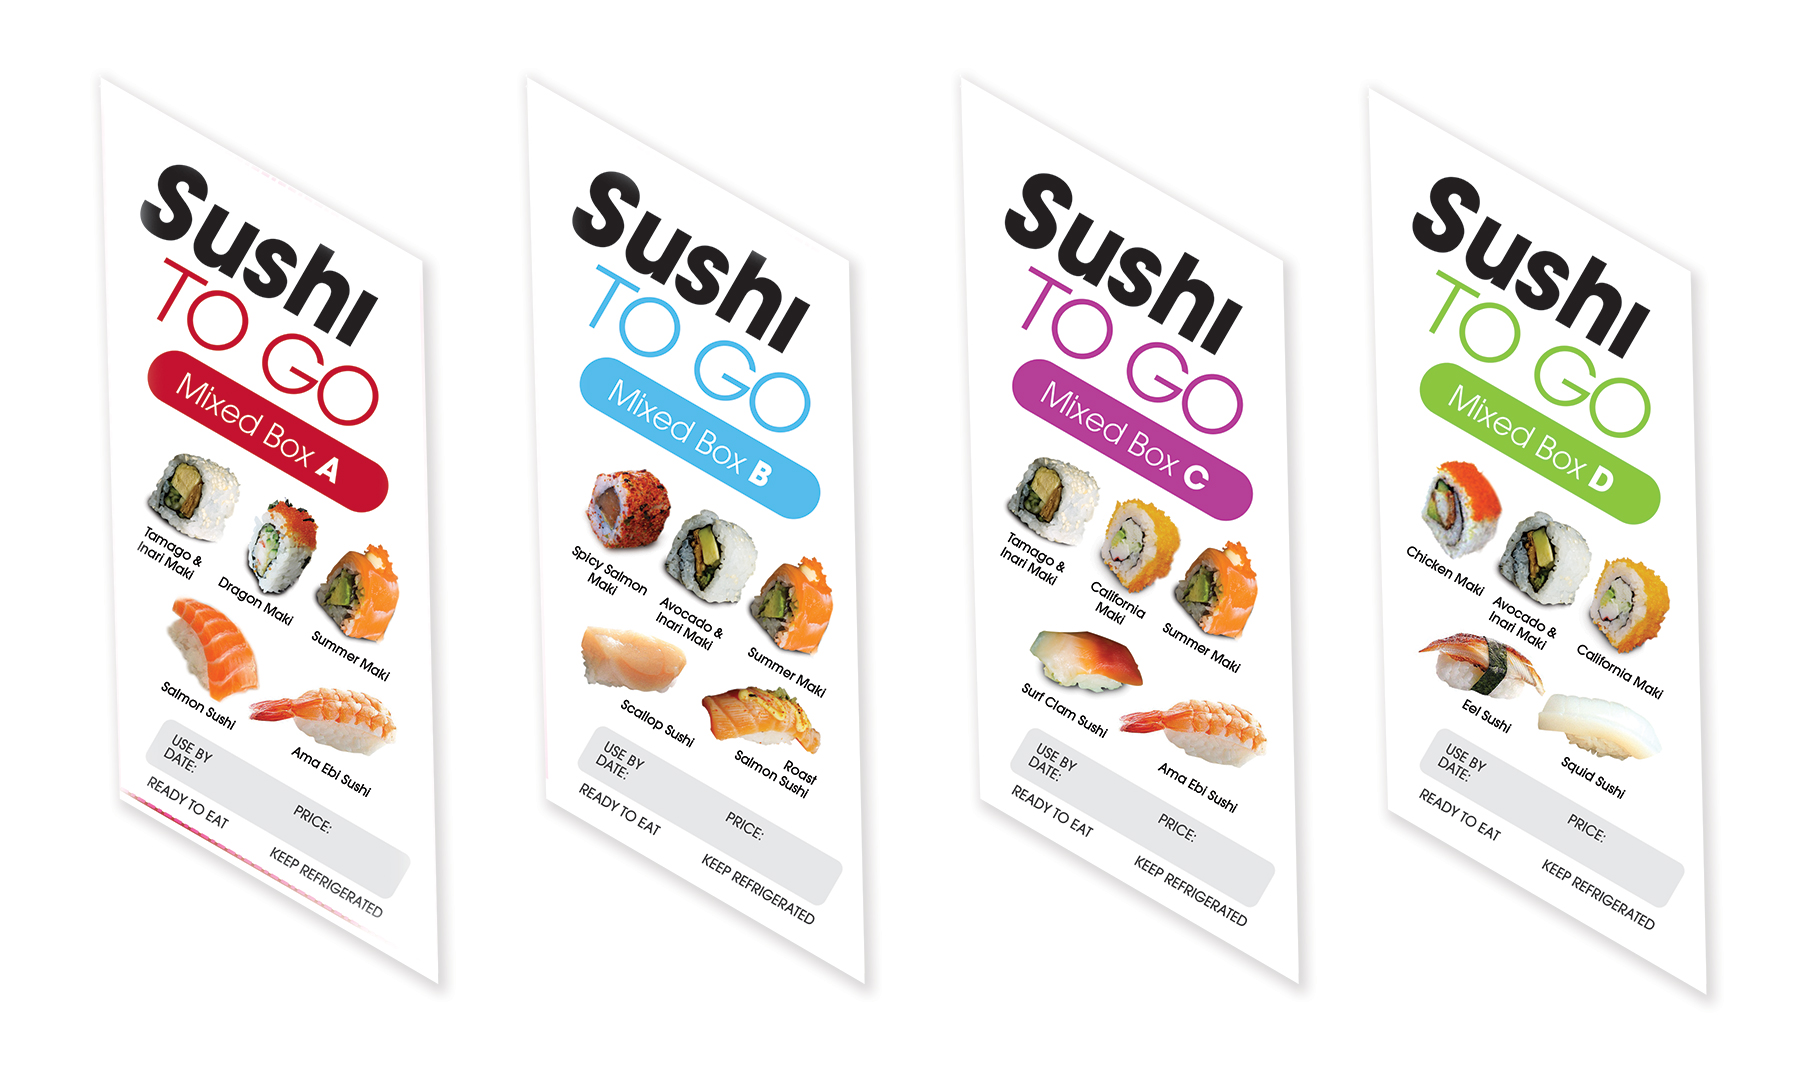 c_cheung_Sushi_To_Go_labels